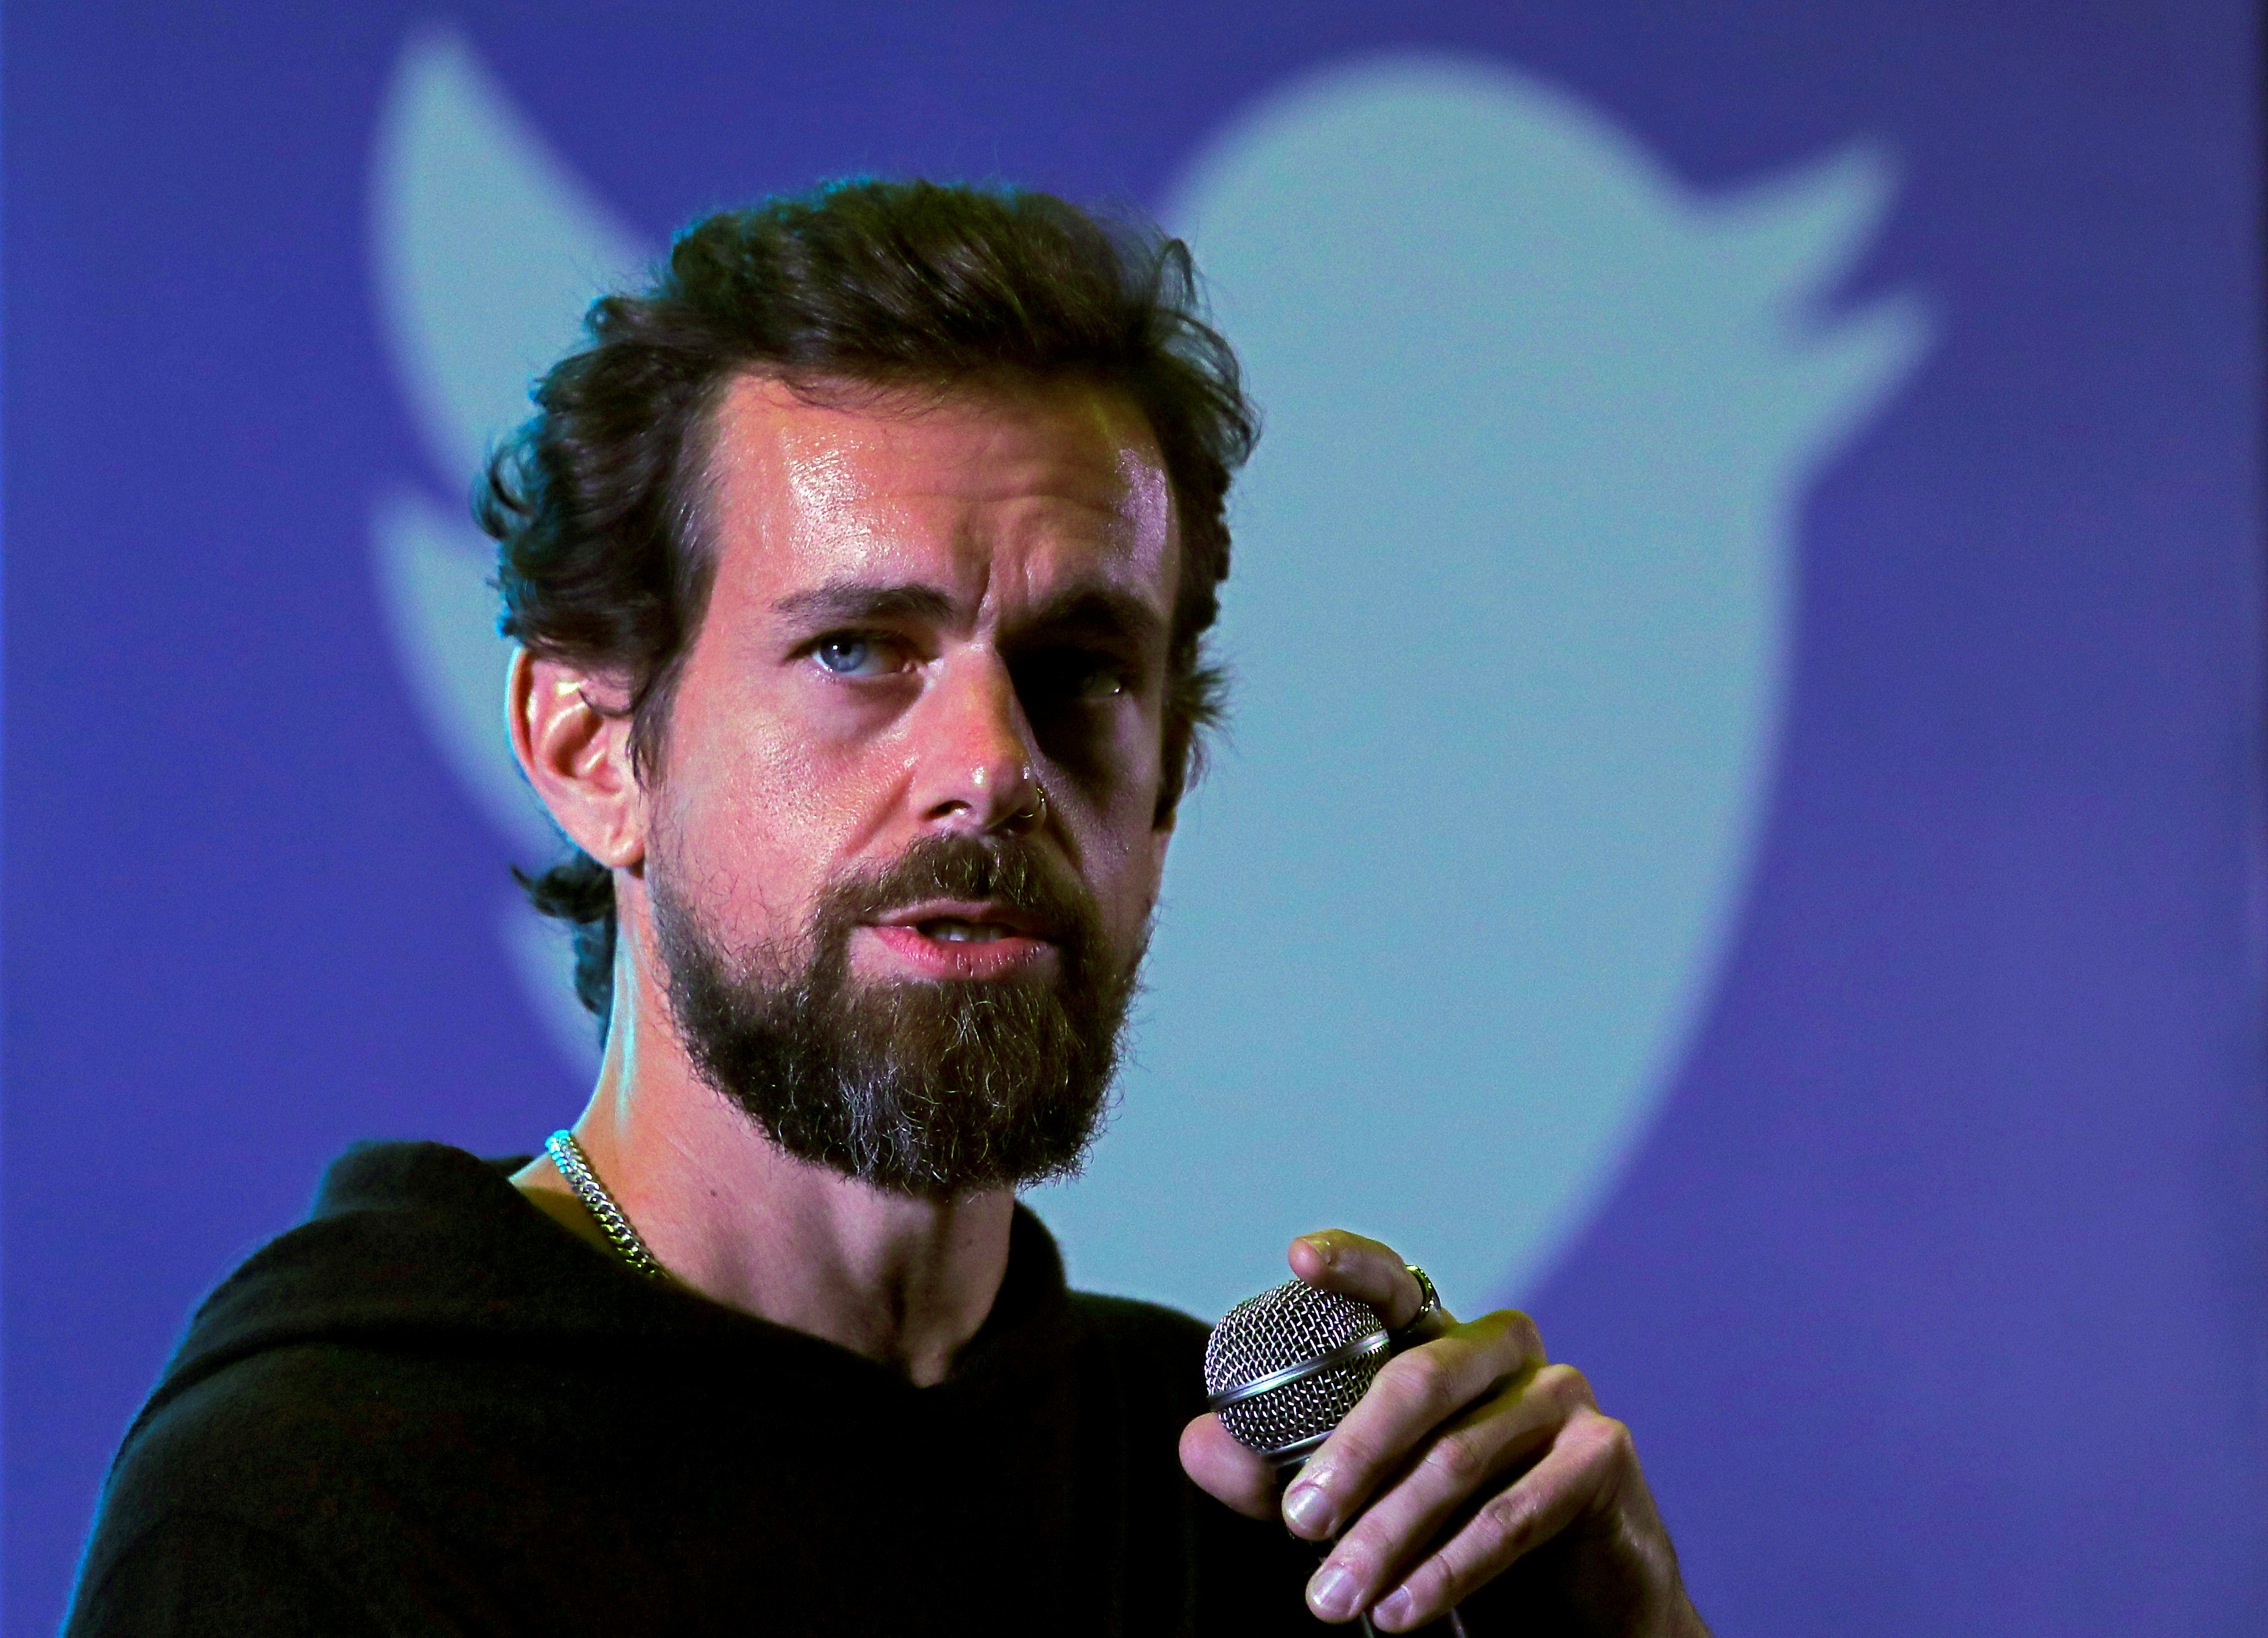 Twitter CEO Jack Dorsey addresses students during a town hall at the Indian Institute of Technology (IIT) in New Delhi, India, November 12, 2018. REUTERS/Anushree Fadnavis//File Photo